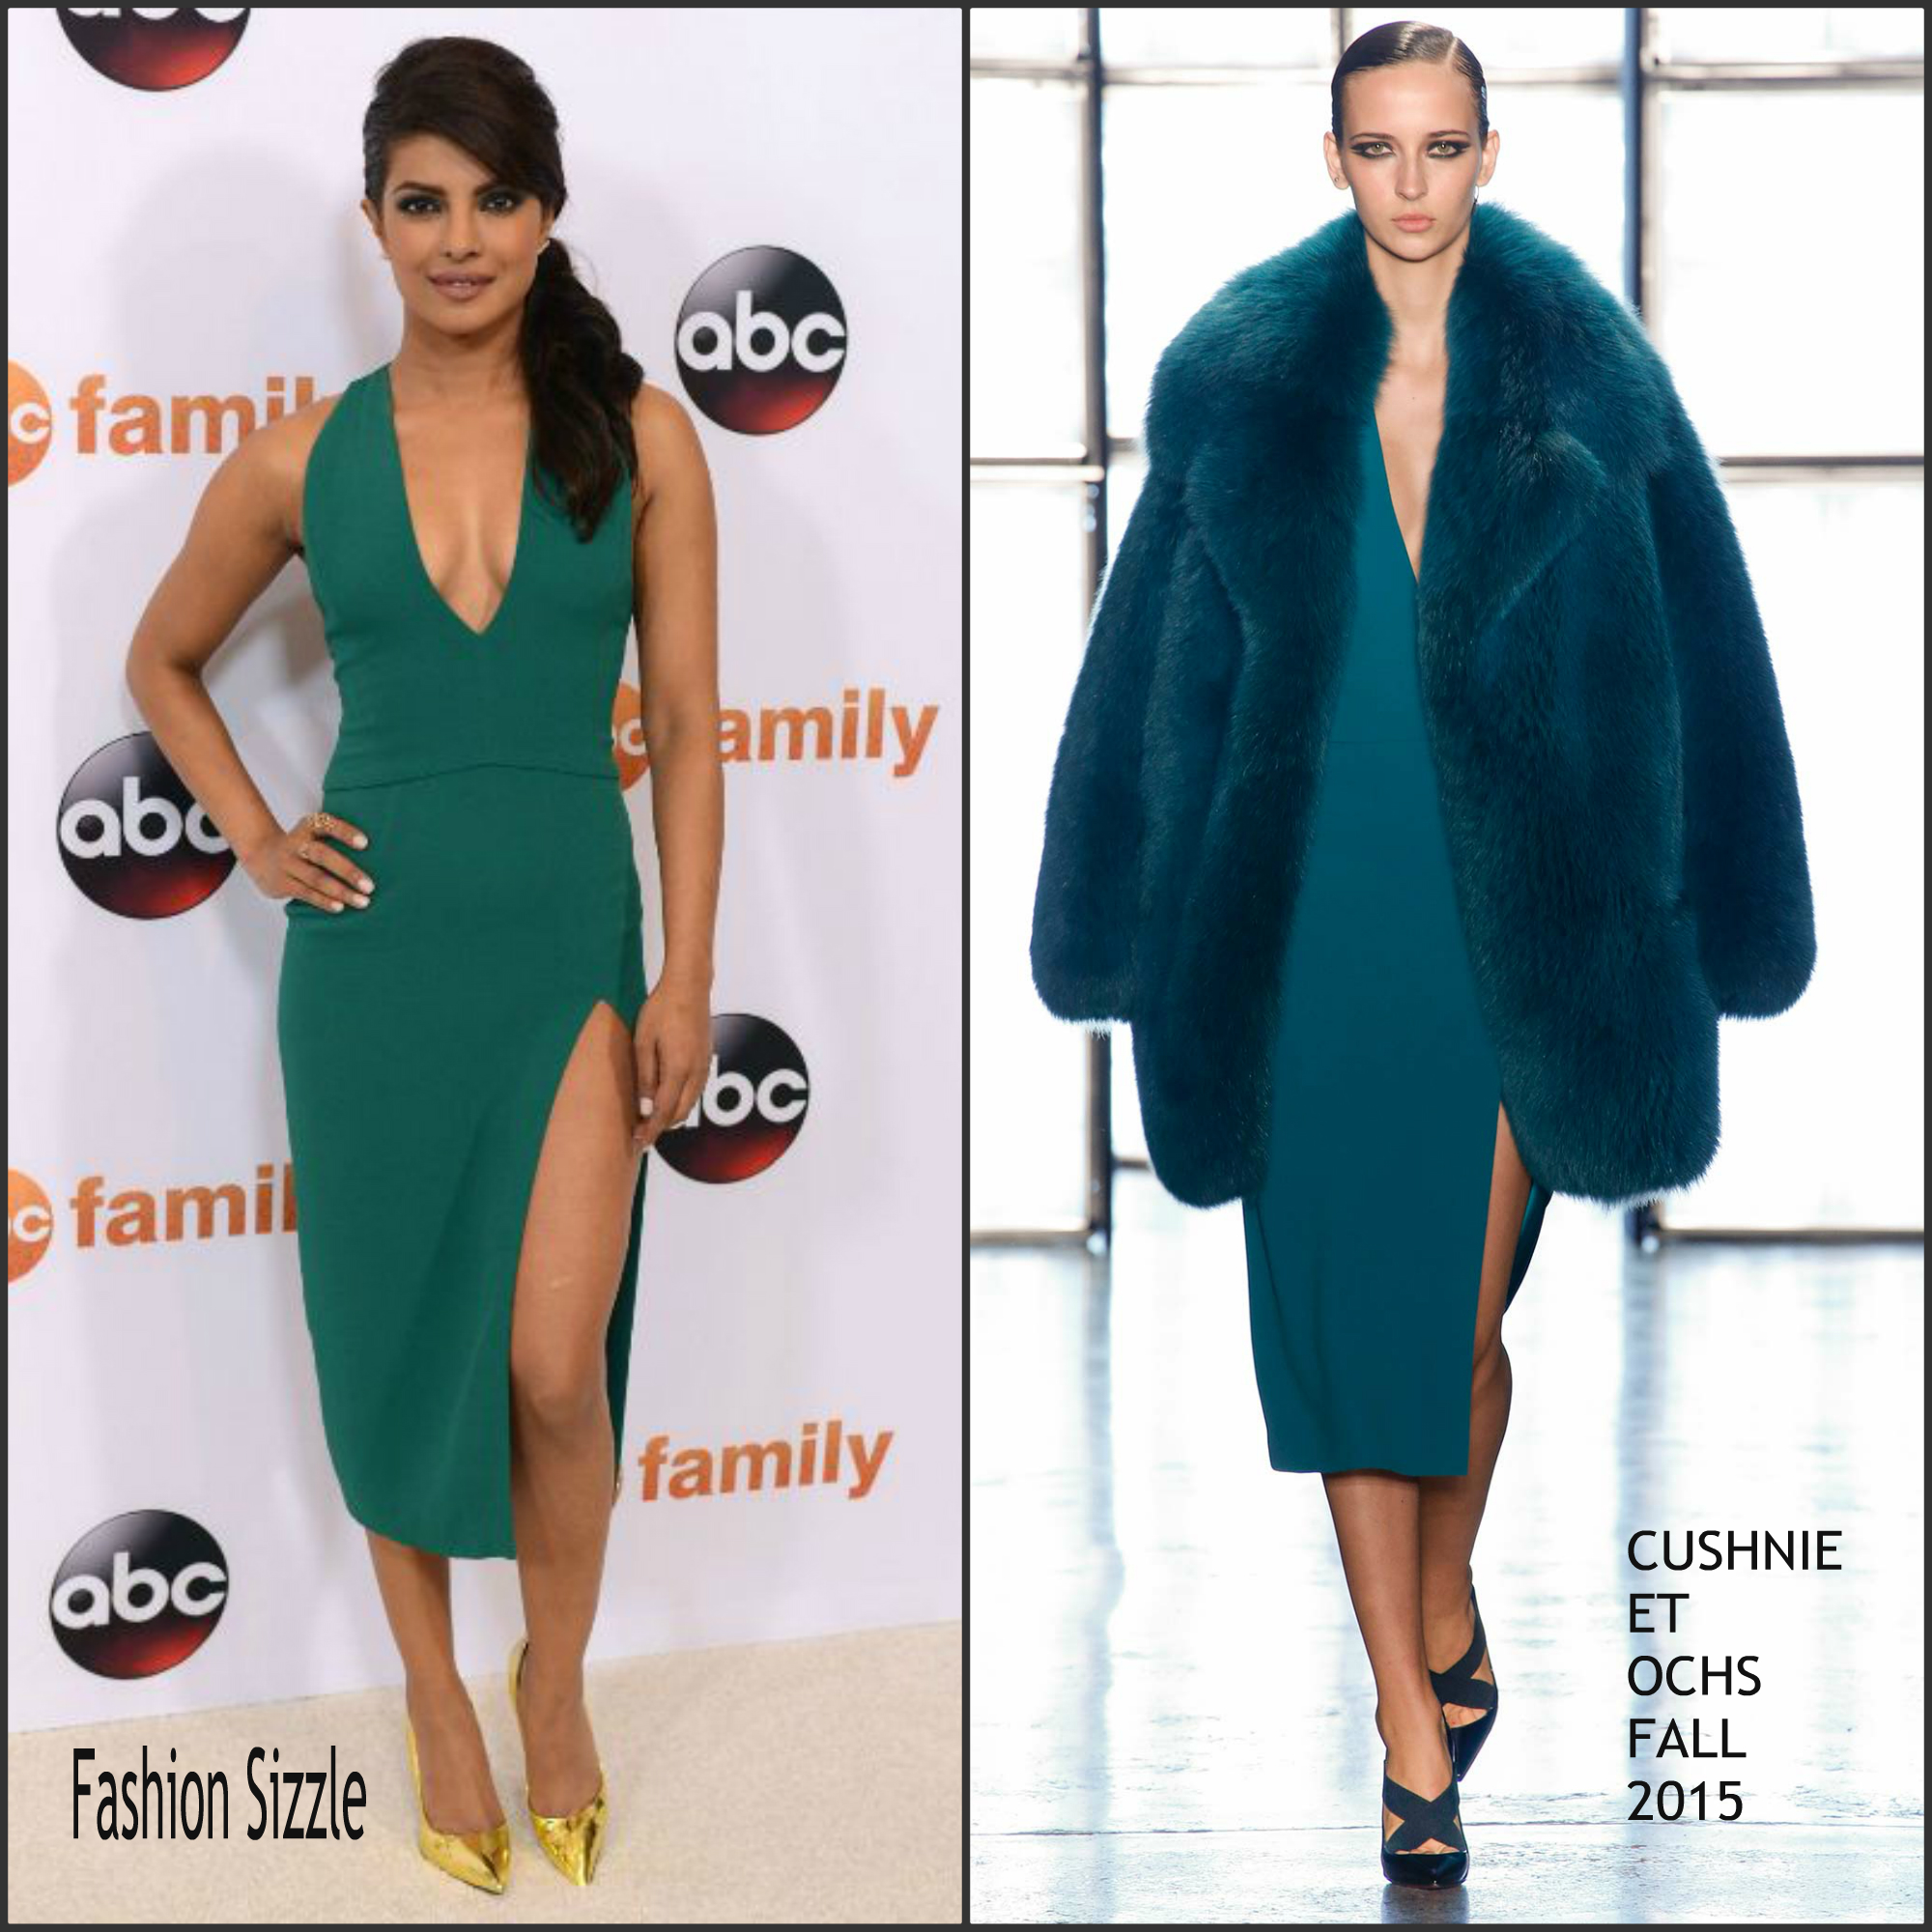 priyanka-chopra-in-cushnie-et-ochs-disney-abc-2015-summer-tga-tour-photocall